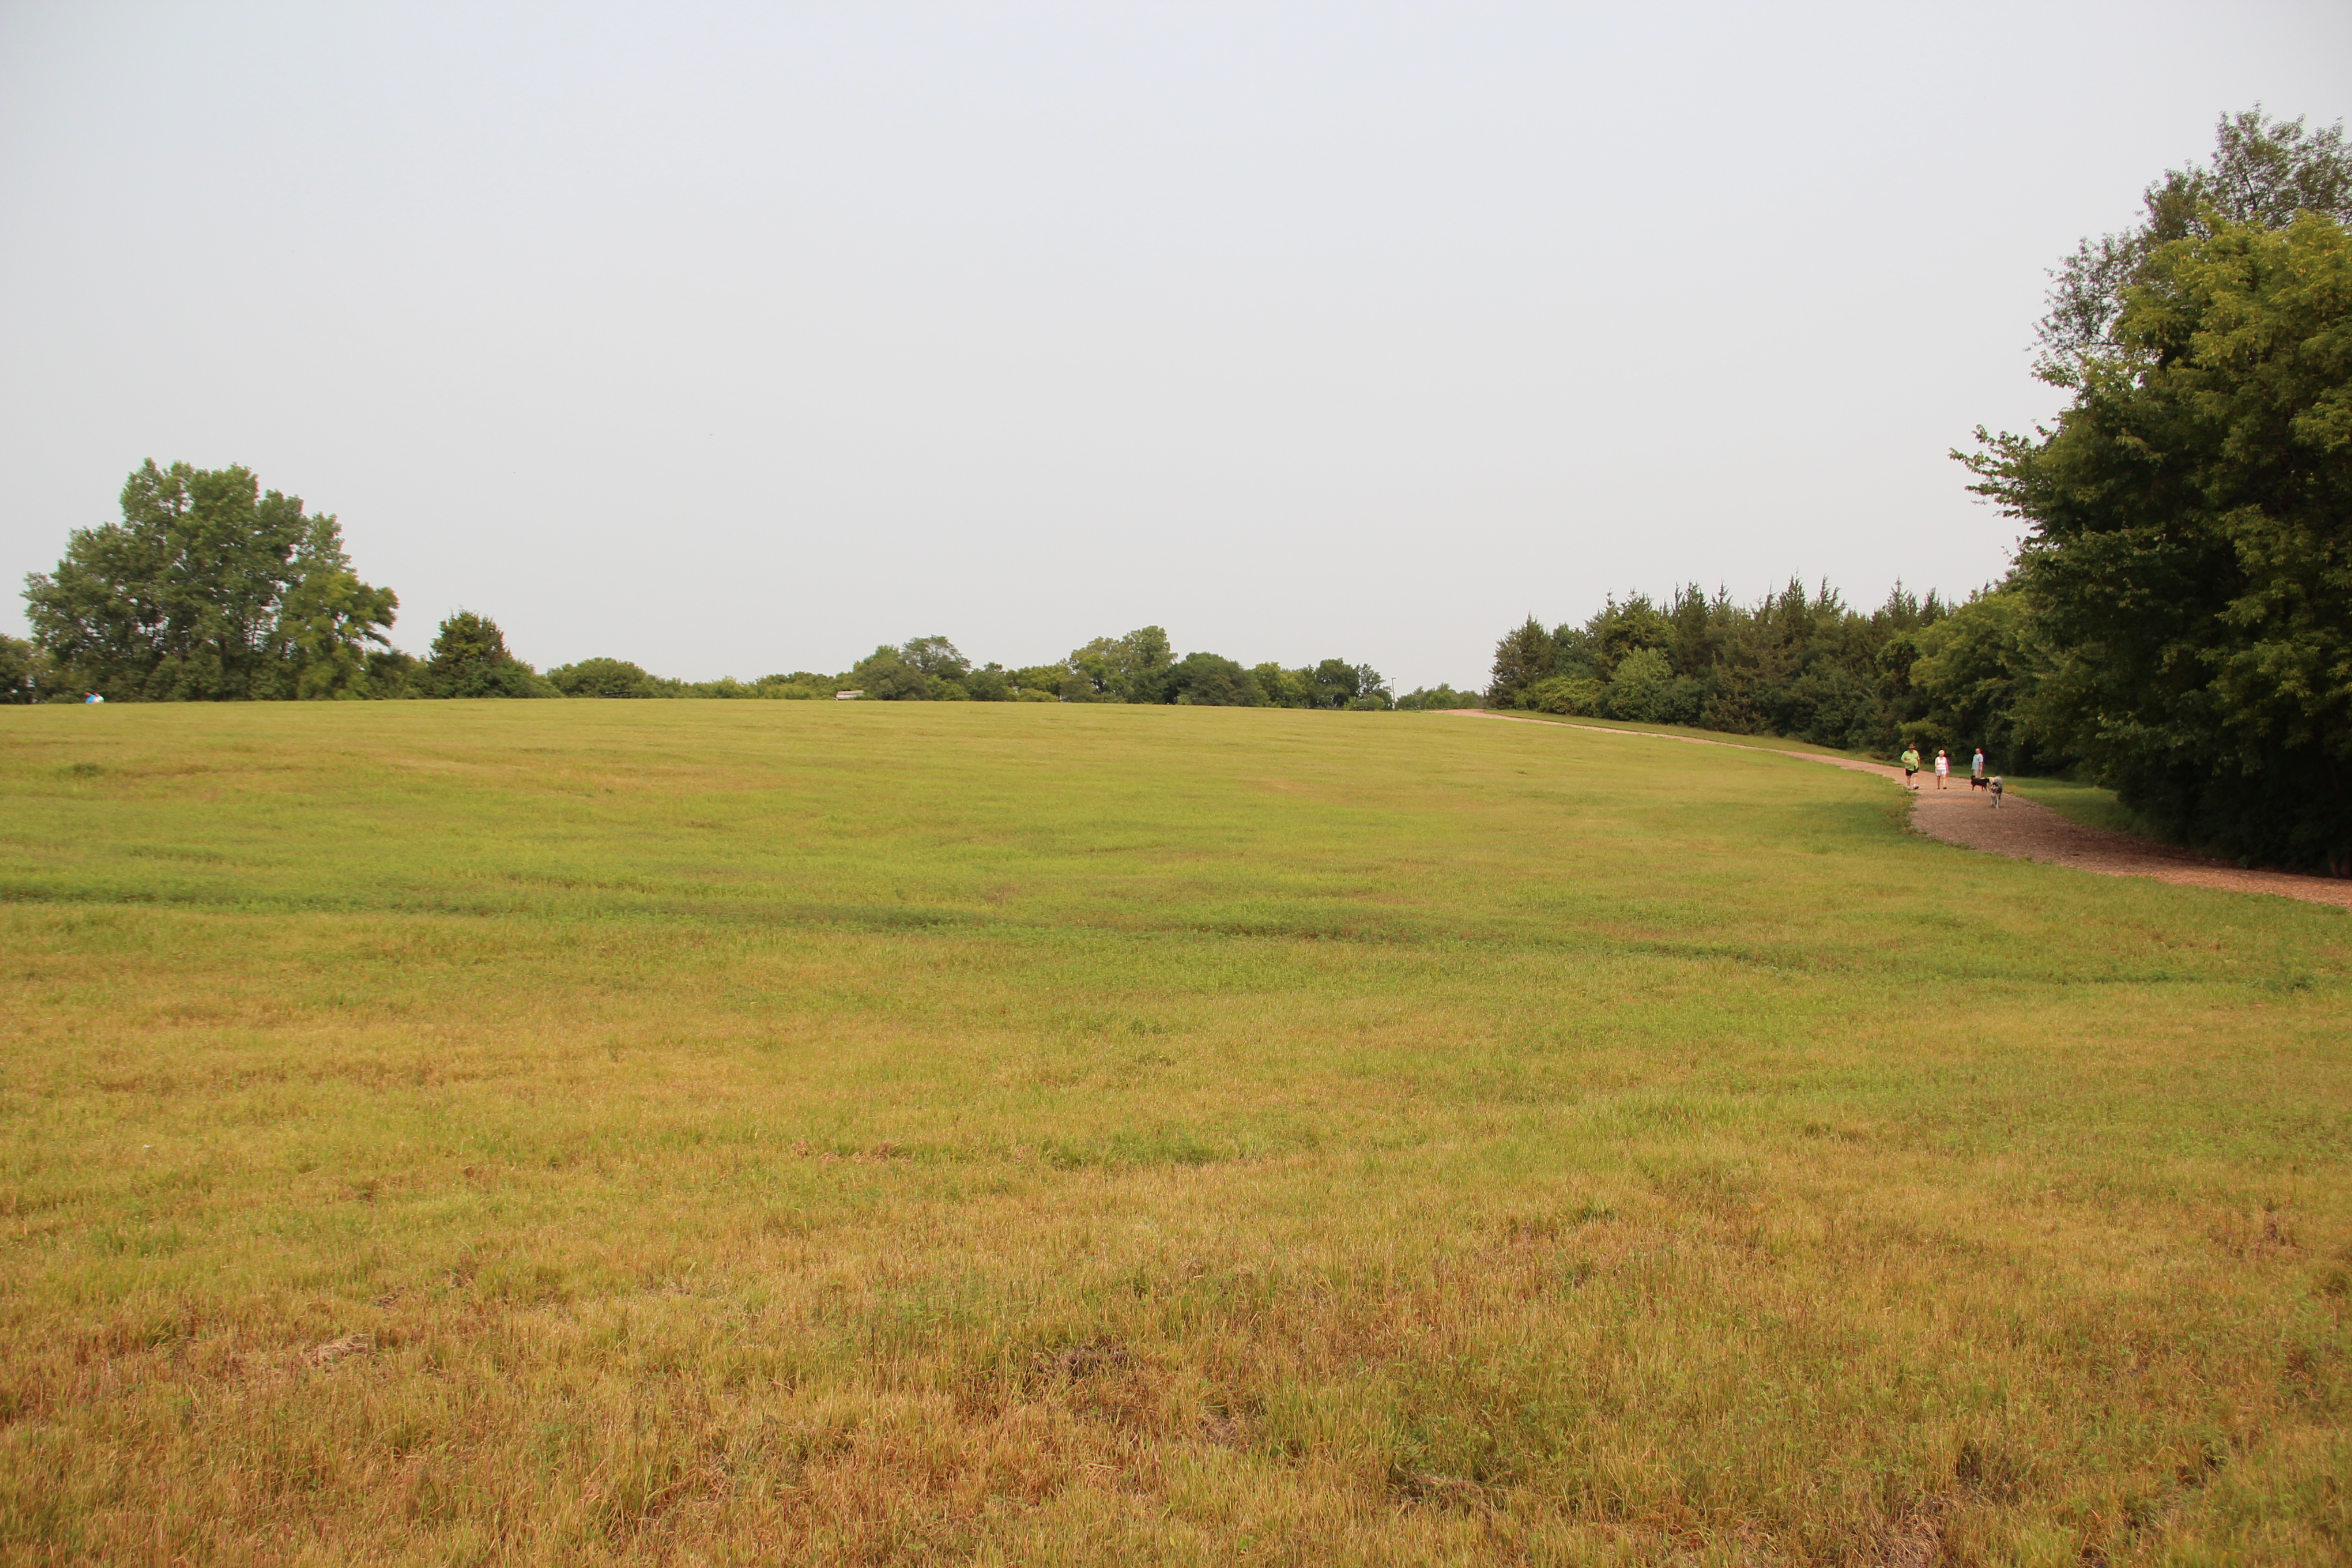 Photo of vacant land in bloomington minnesota